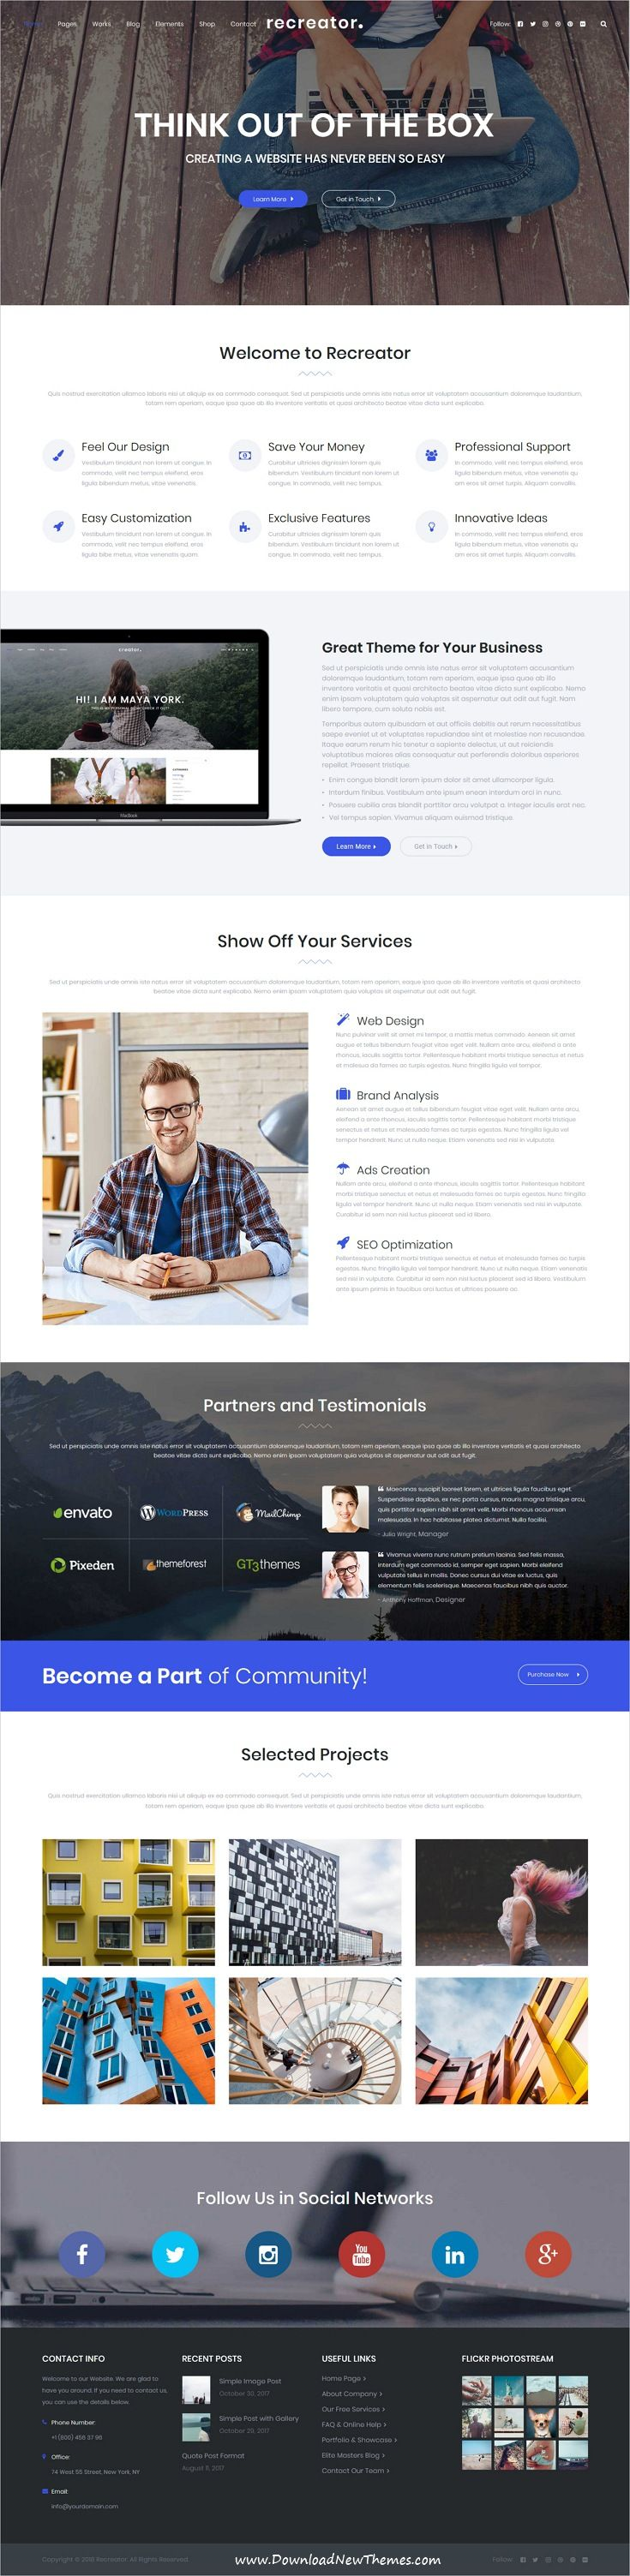 Recreator - Creative Multi Purpose WordPress Theme | Wordpress ...